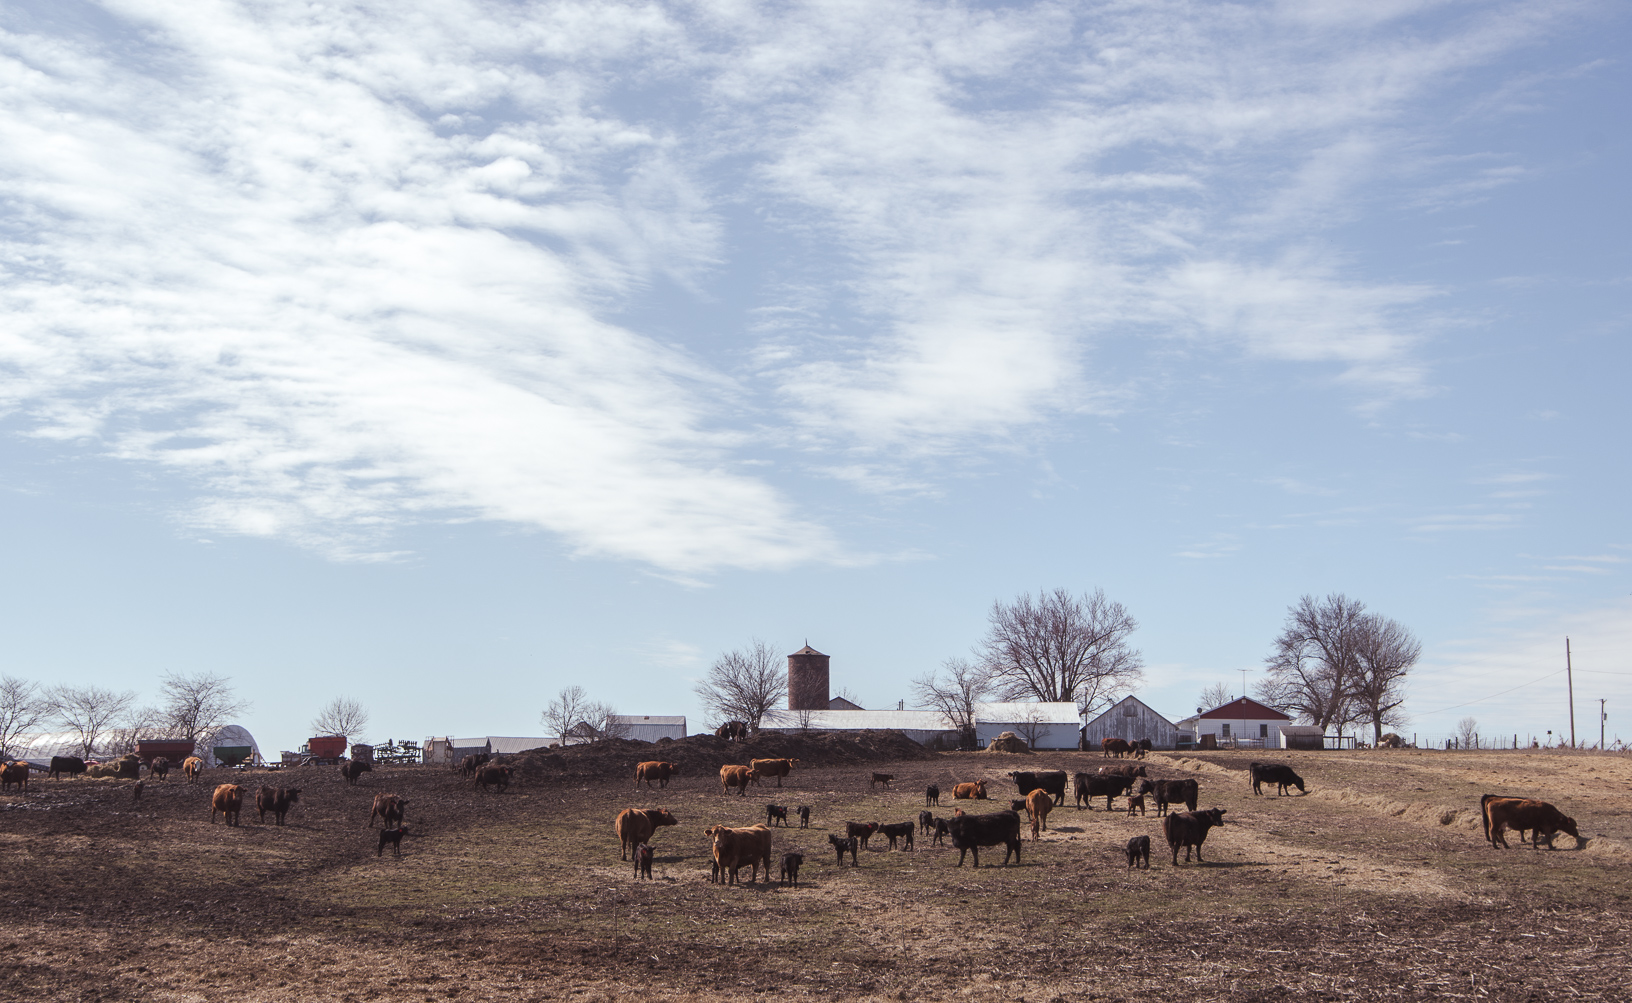 A pasture next to Reed's farm is speckled with cattle during calving season.